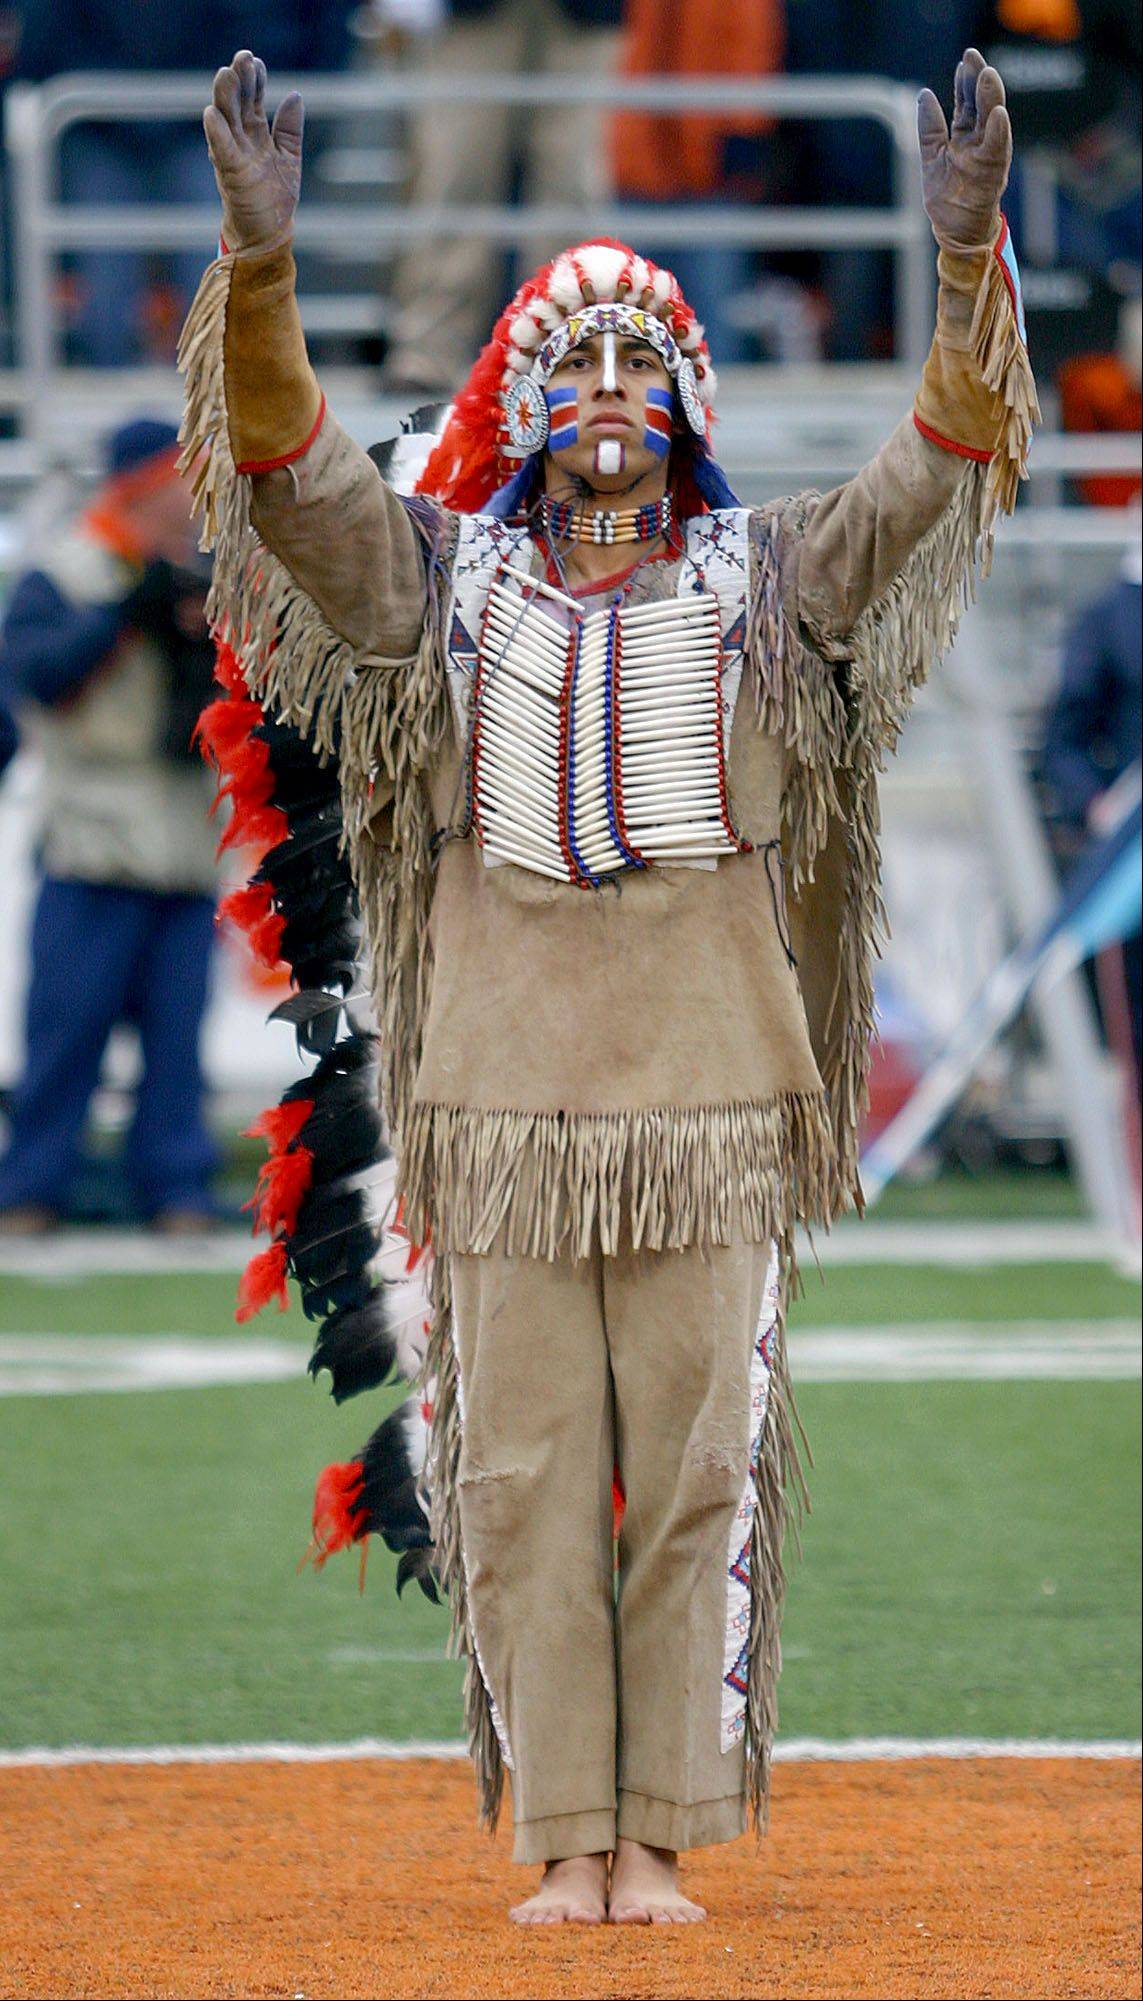 In his last appearance at halftime of a University of Illinois football game in 2006, Chief Illiniwek Logan Ponce poses at Memorial Stadium in Champaign. Facing NCAA sanctions, the school retired the controversial Chief in 2007.